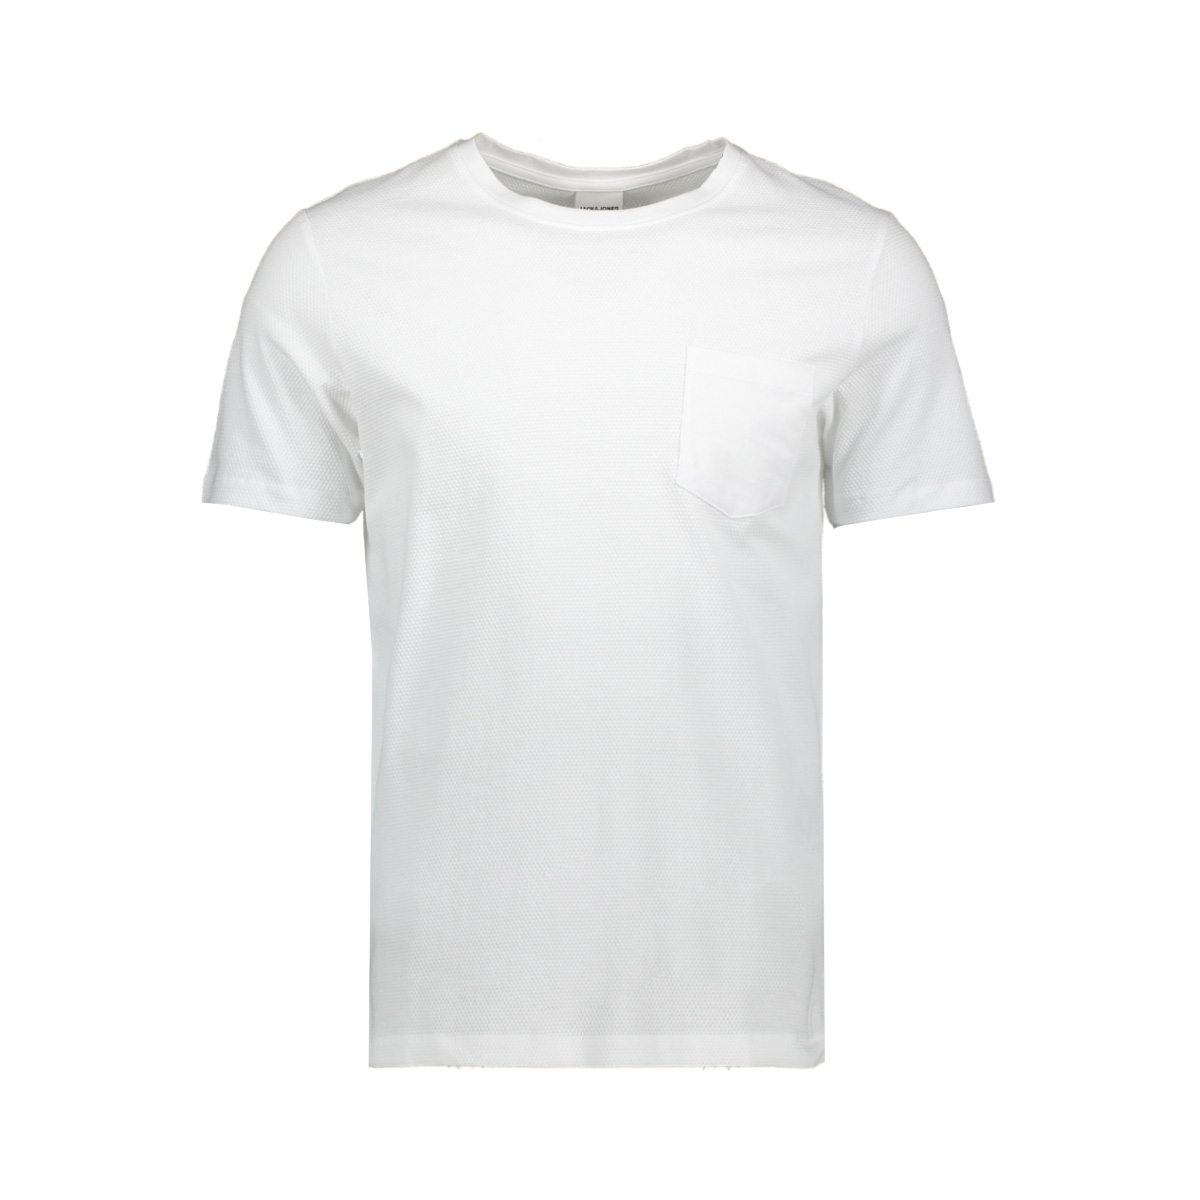 jcolike tee ss crew neck 12152216 jack & jones t-shirt white/slim